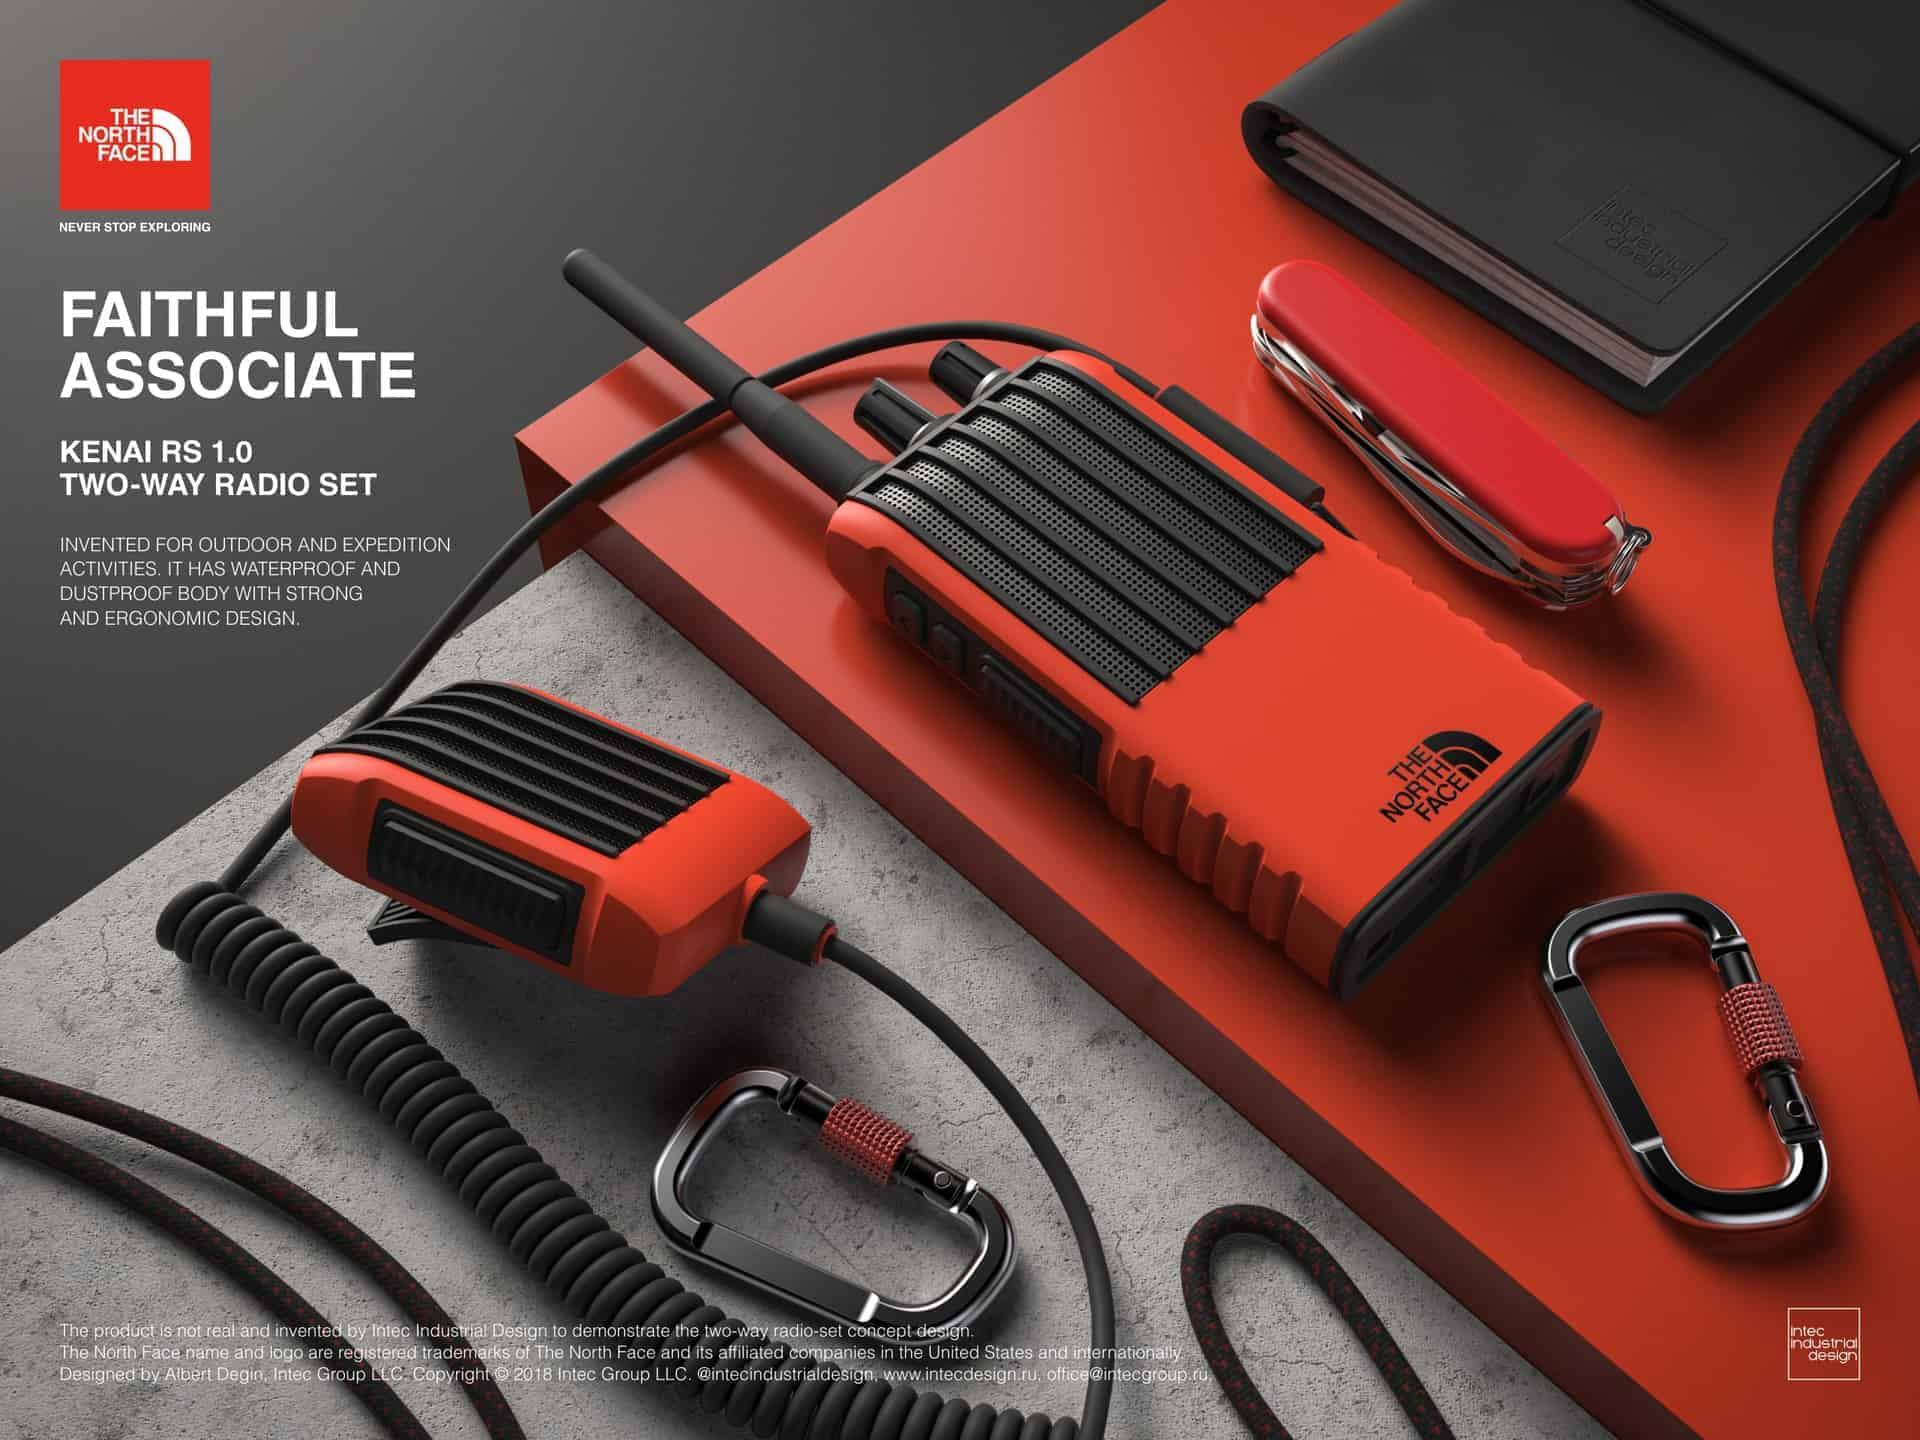 The North Face two-way radio set concept